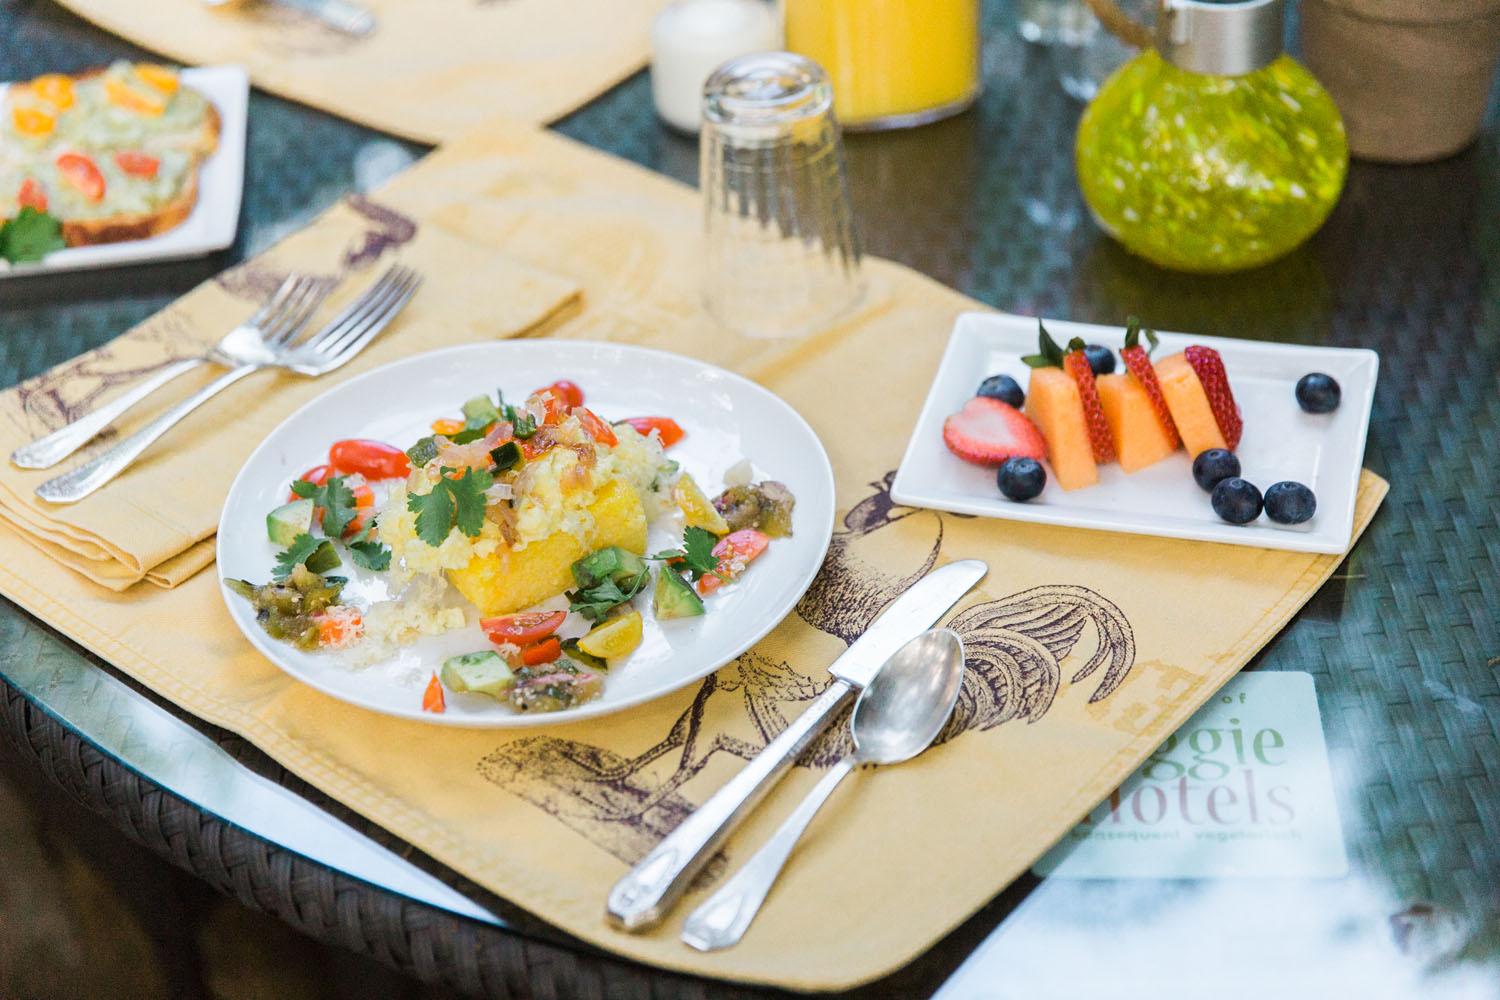 Indulge yourself each morning with a freshly prepared organic vegetarian or vegan breakfast. Fresh eggs from our free range hens, fruits and vegetables from our organic garden and many locally-sourced ingredients.    Breakfast is served on your private deck, by the pool, or in the main house dining room.